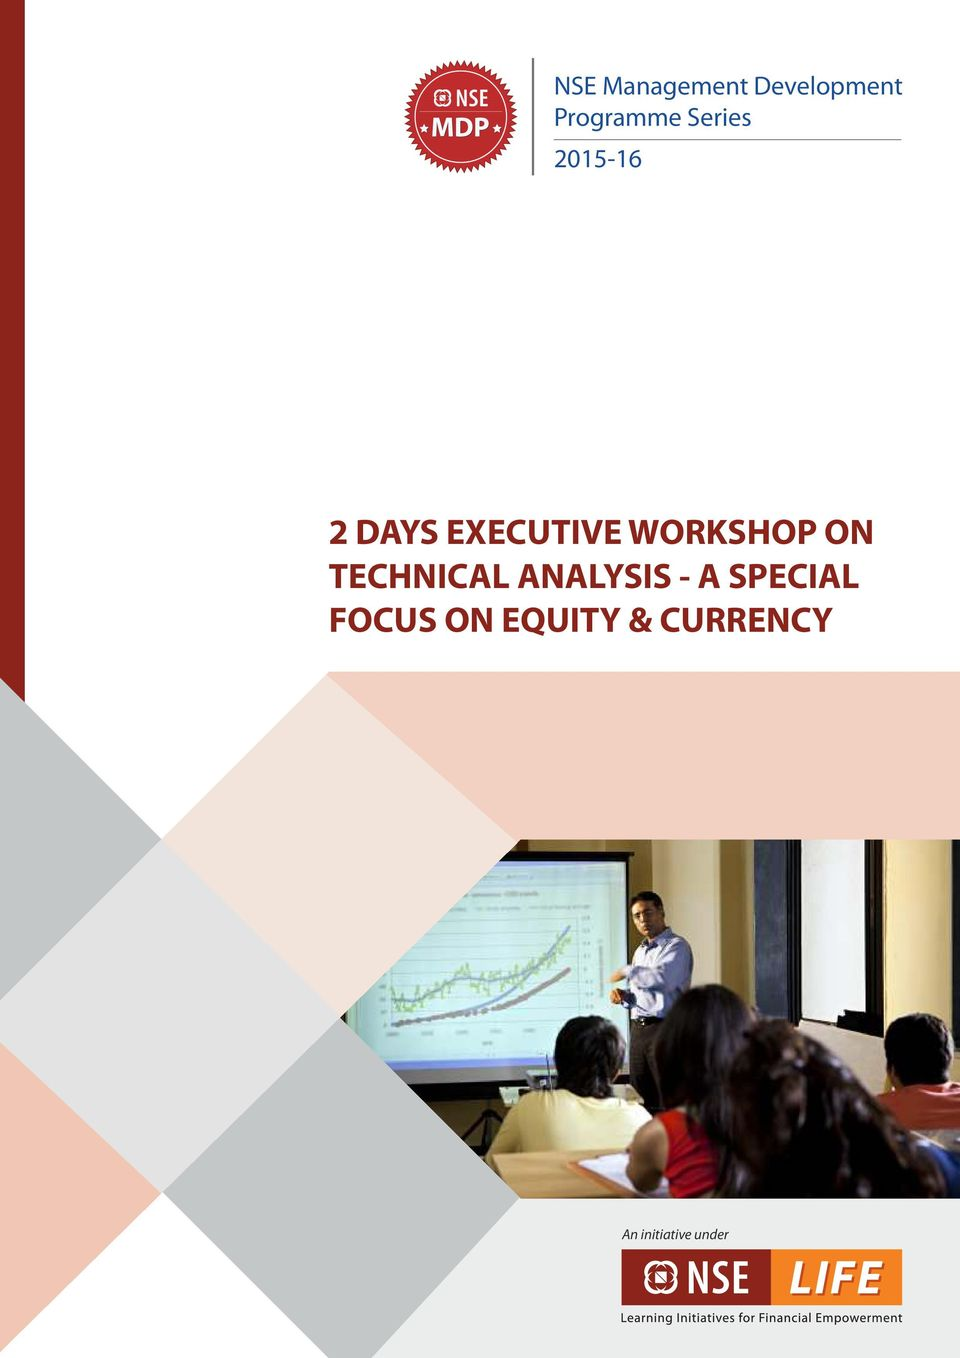 WORKSHOP ON TECHNICAL ANALYSIS - A